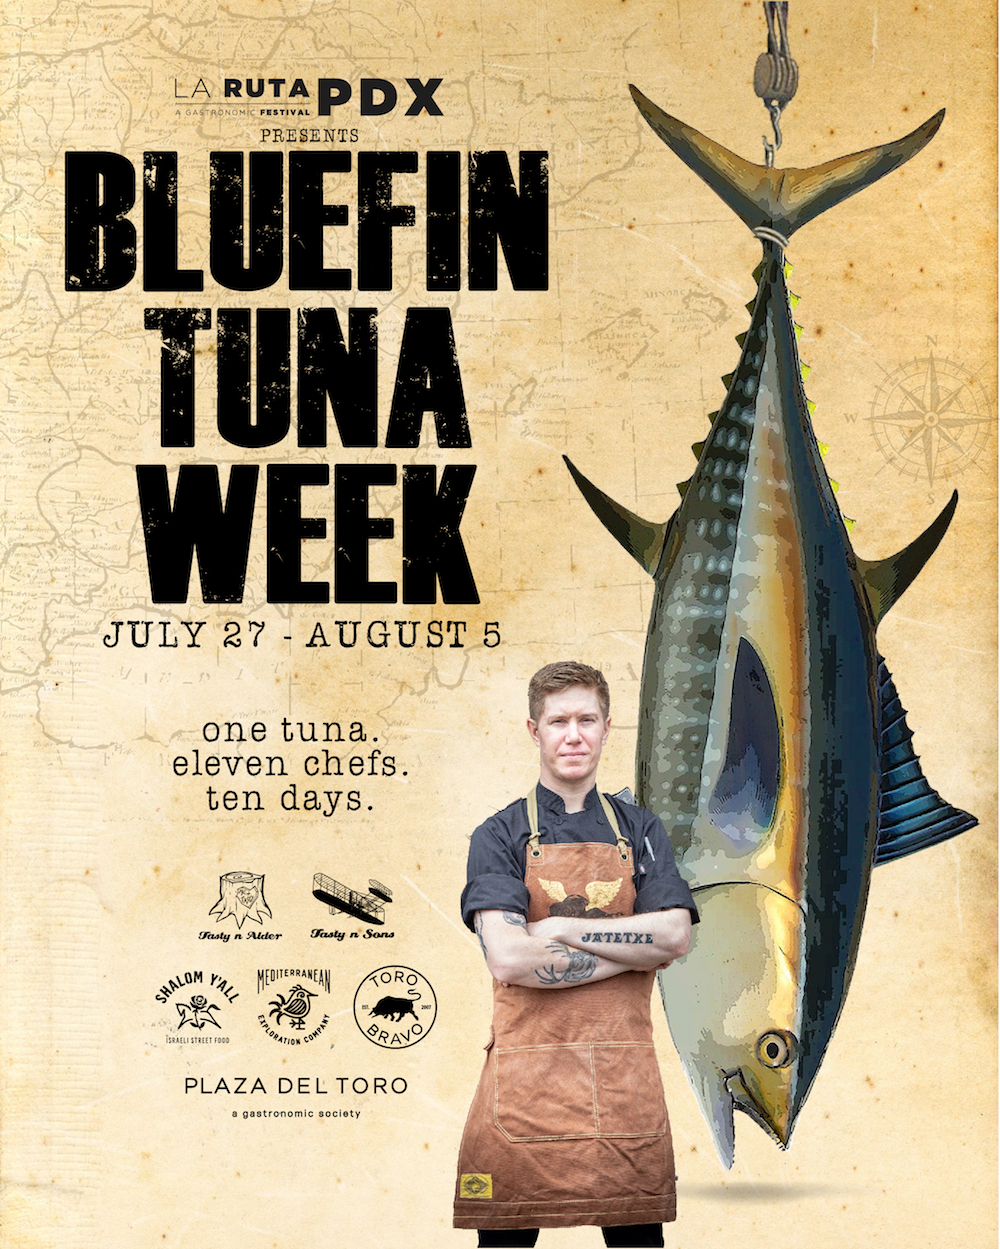 Bluefin Tuna Week